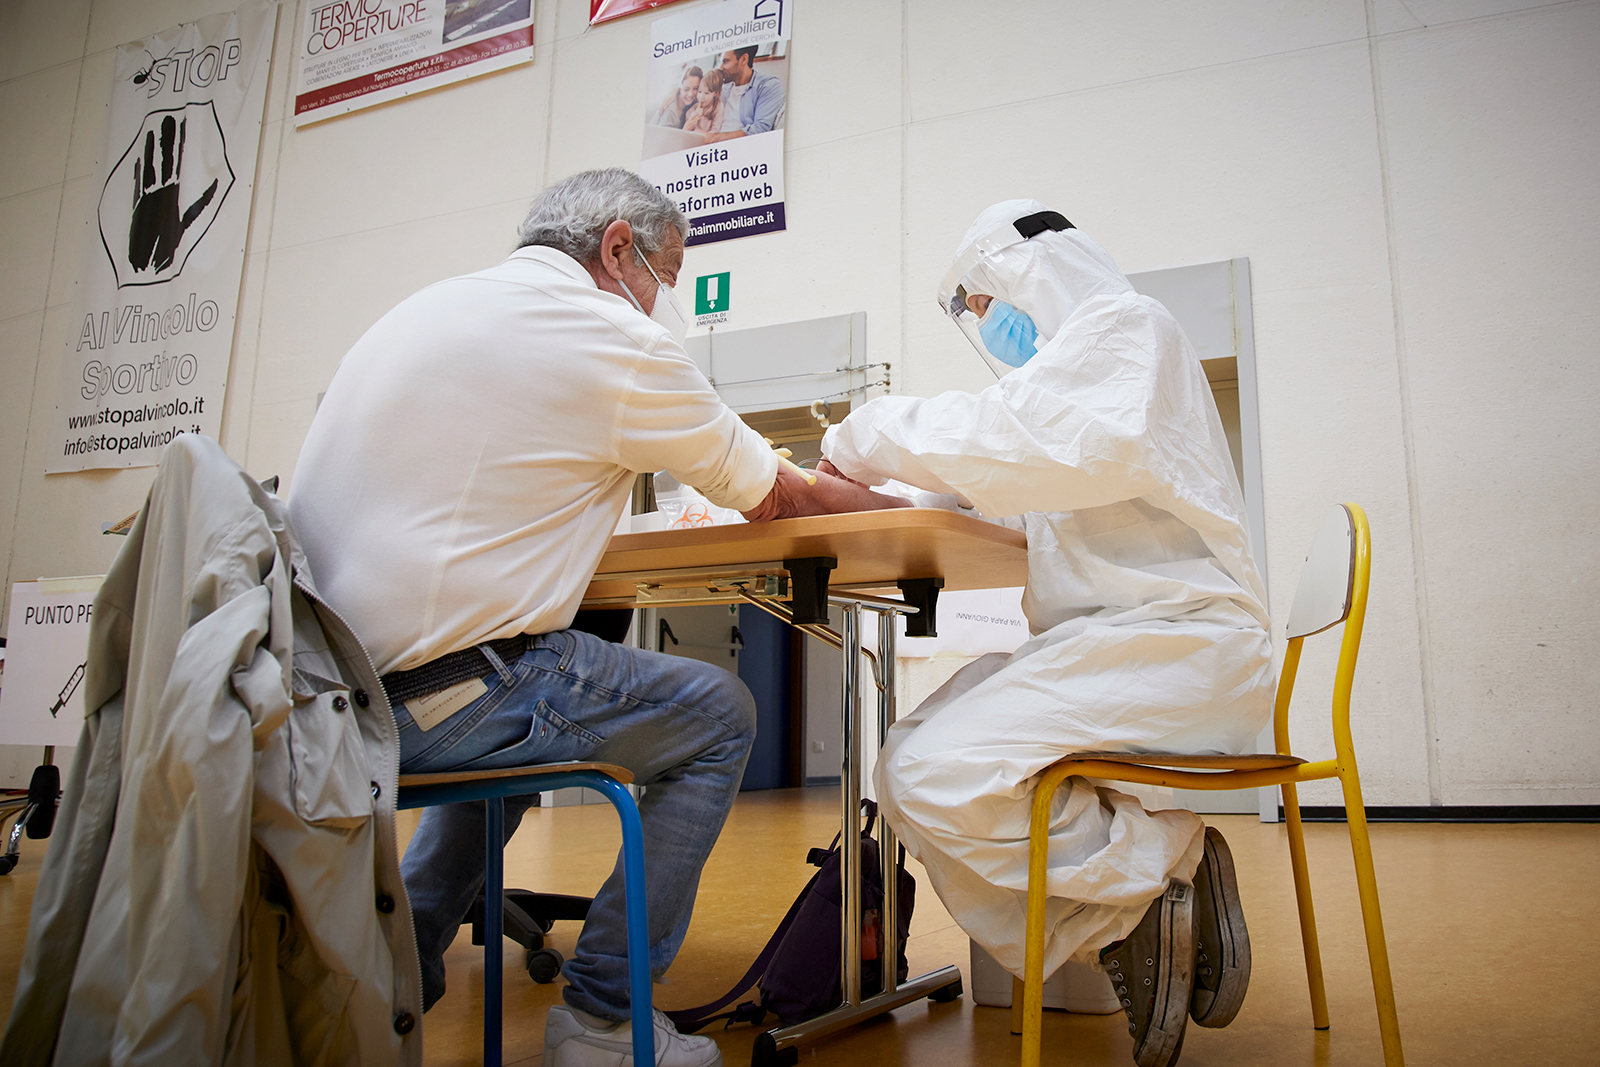 A heath worker wearing PPE takes a blood sample from a man in Cisliano, Italy on April 28.